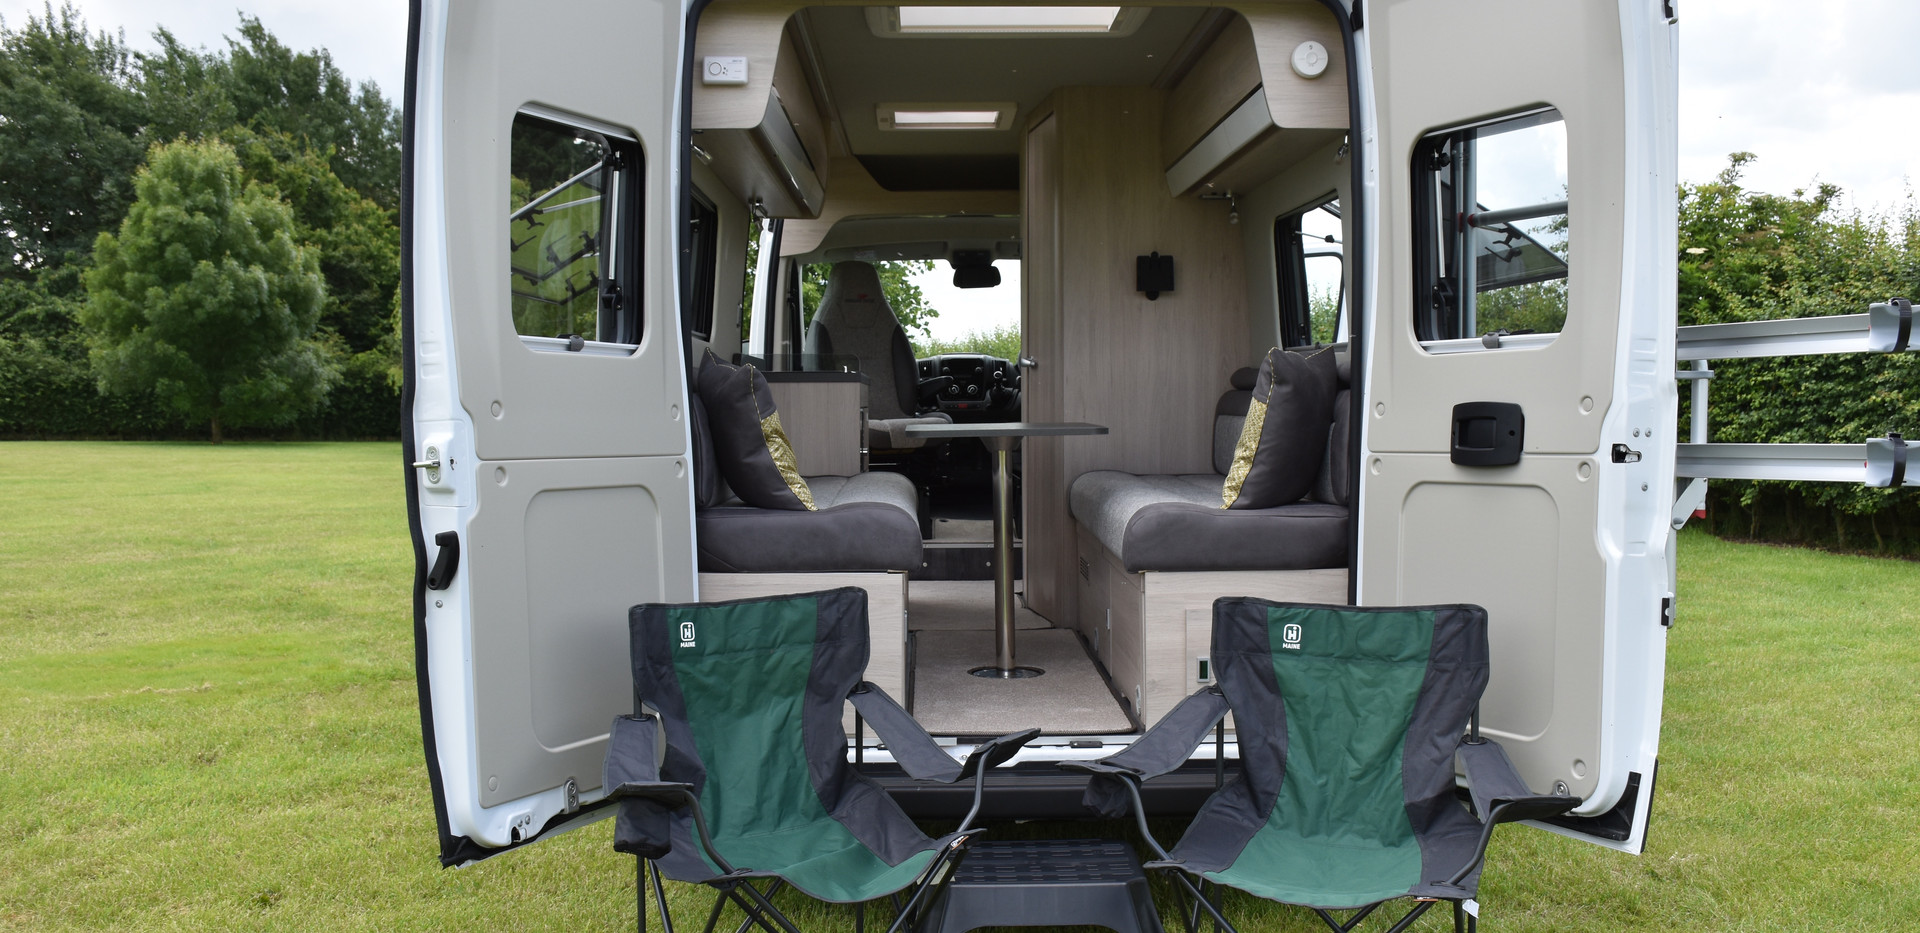 holidays motorhome hire rolleston